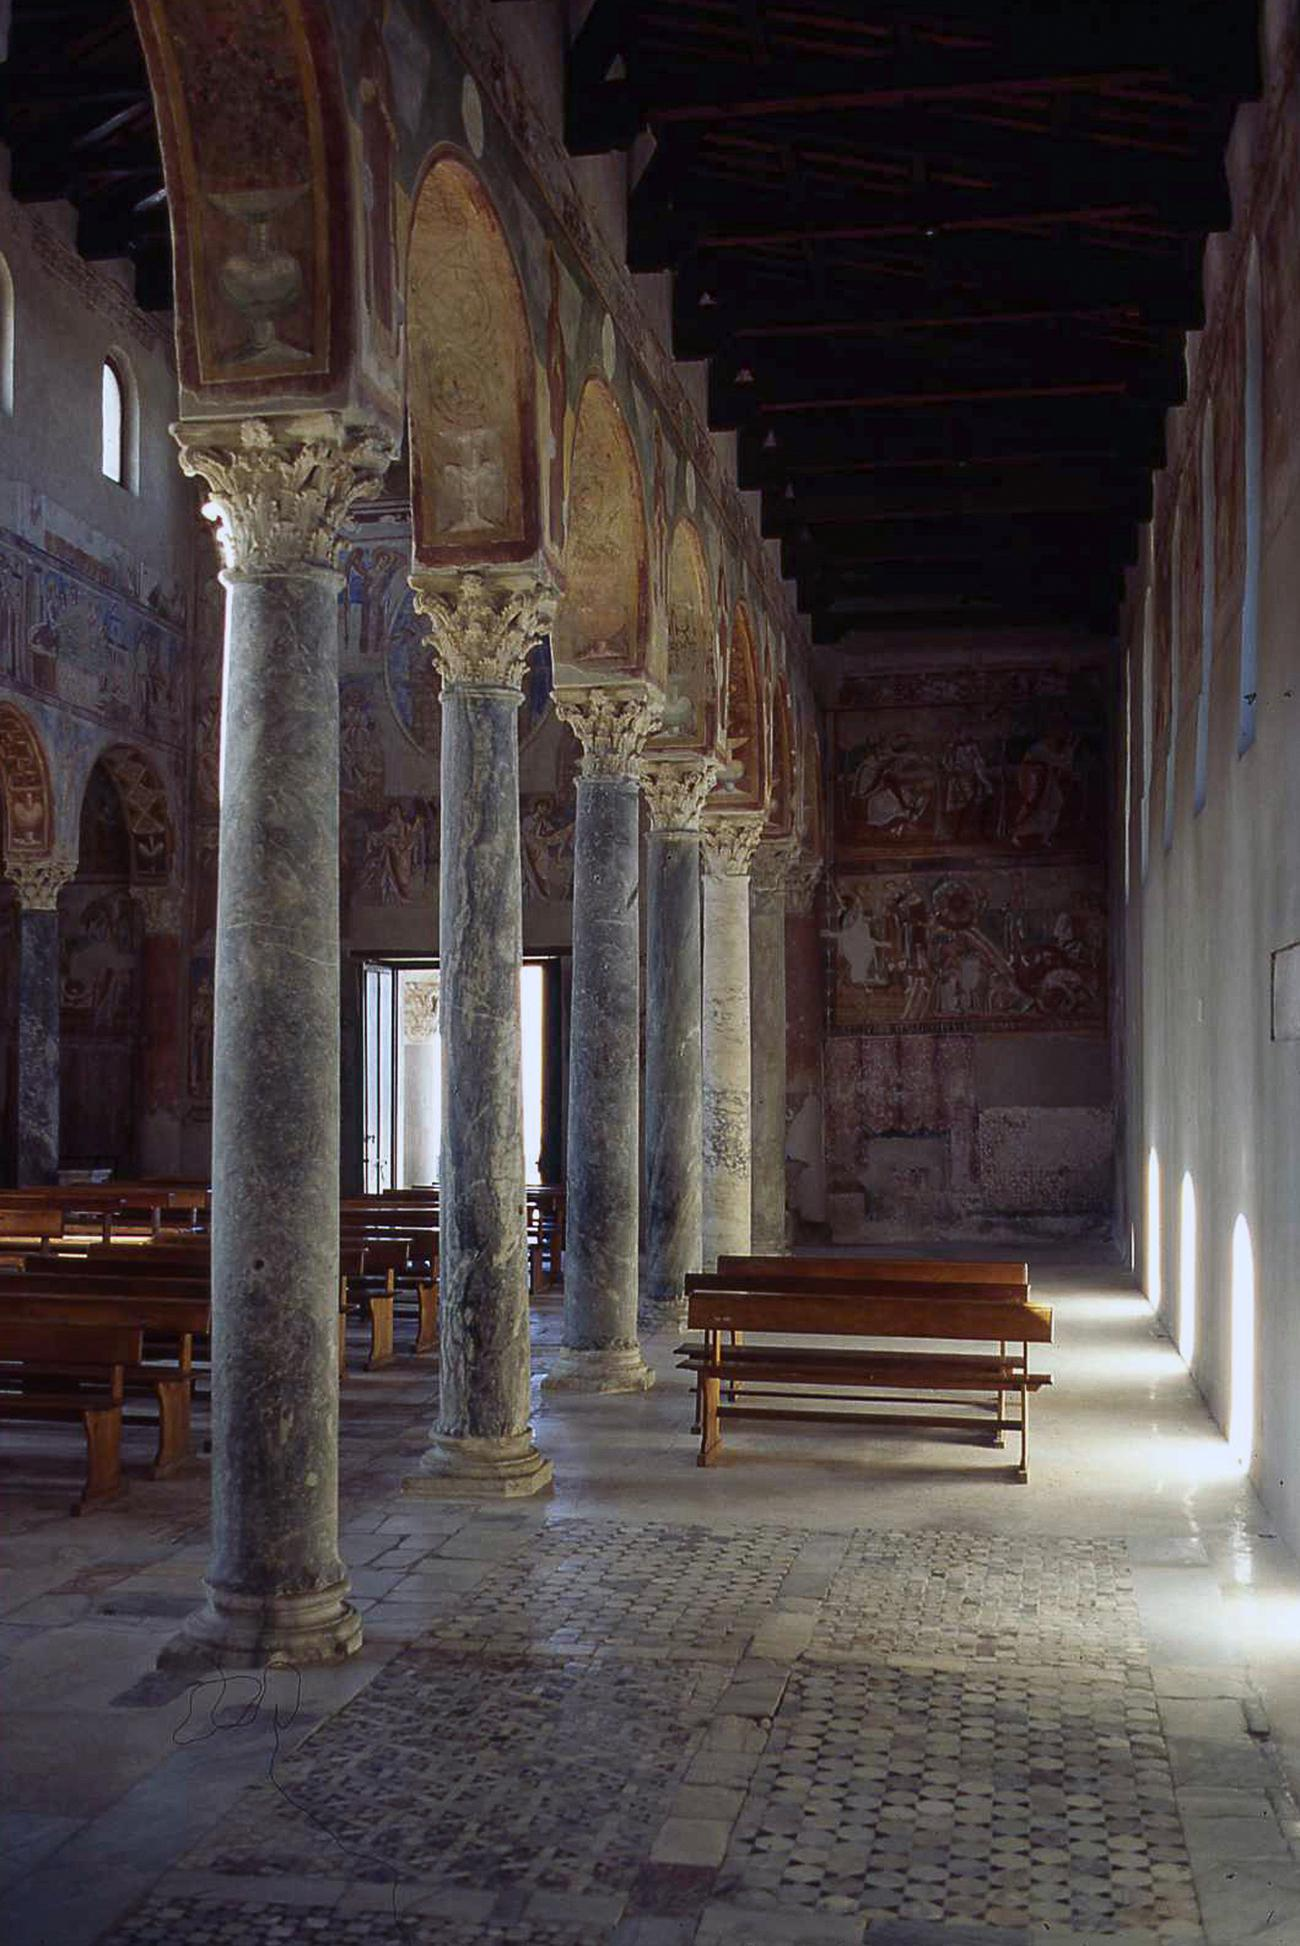 The left side nave of the Basilica with its Byzantine frescoes painted between 1072 and 1087. – © Caserta Royal Palace Archive